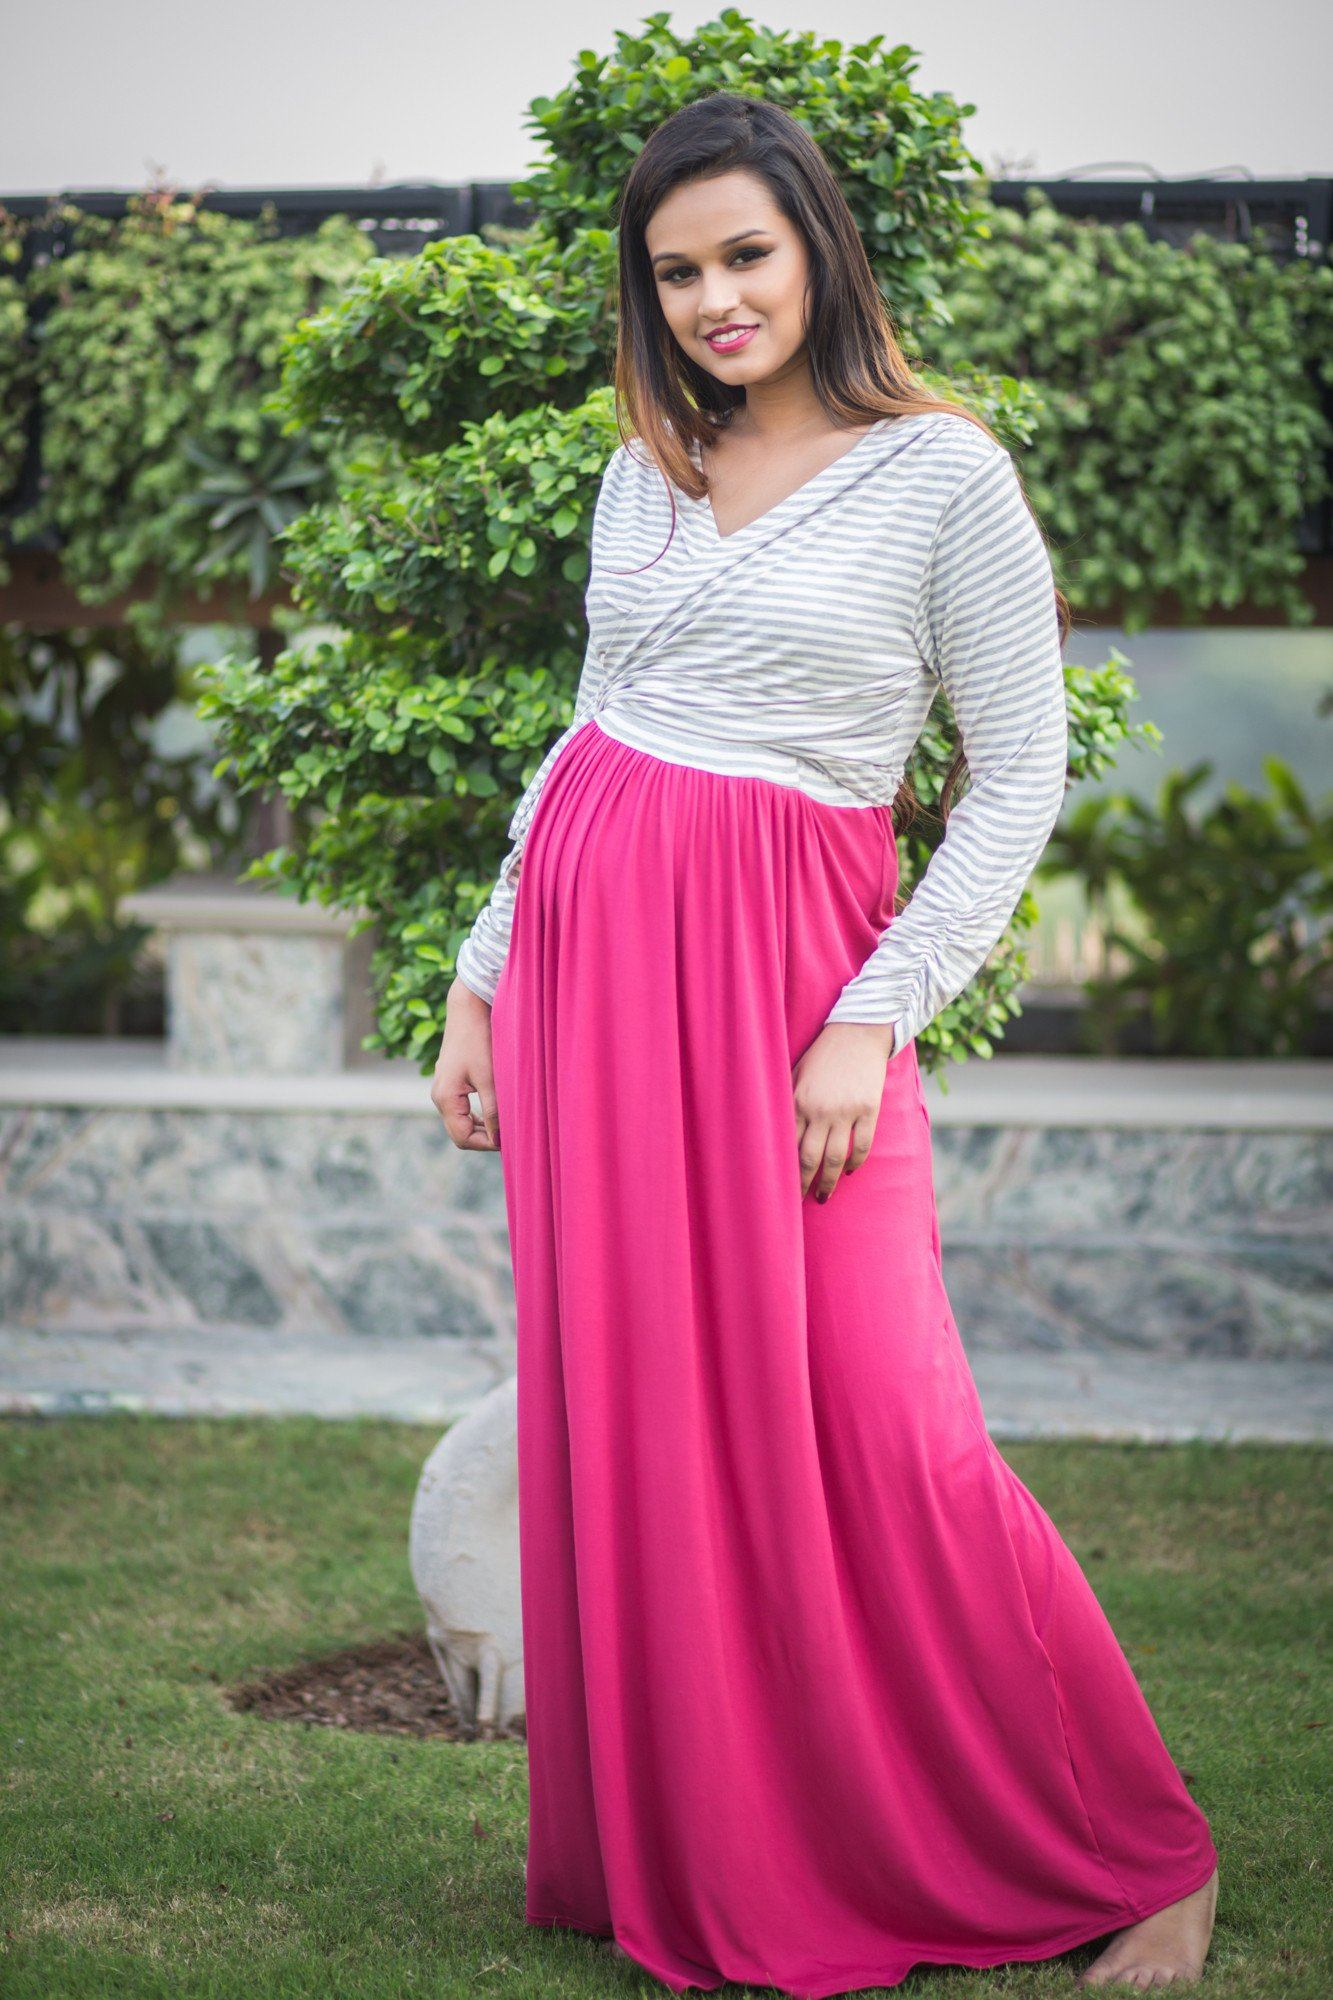 MOMZJOY - Buy Maternity Clothes, Pregnancy Wear Online India - Maternity Feeding Dress